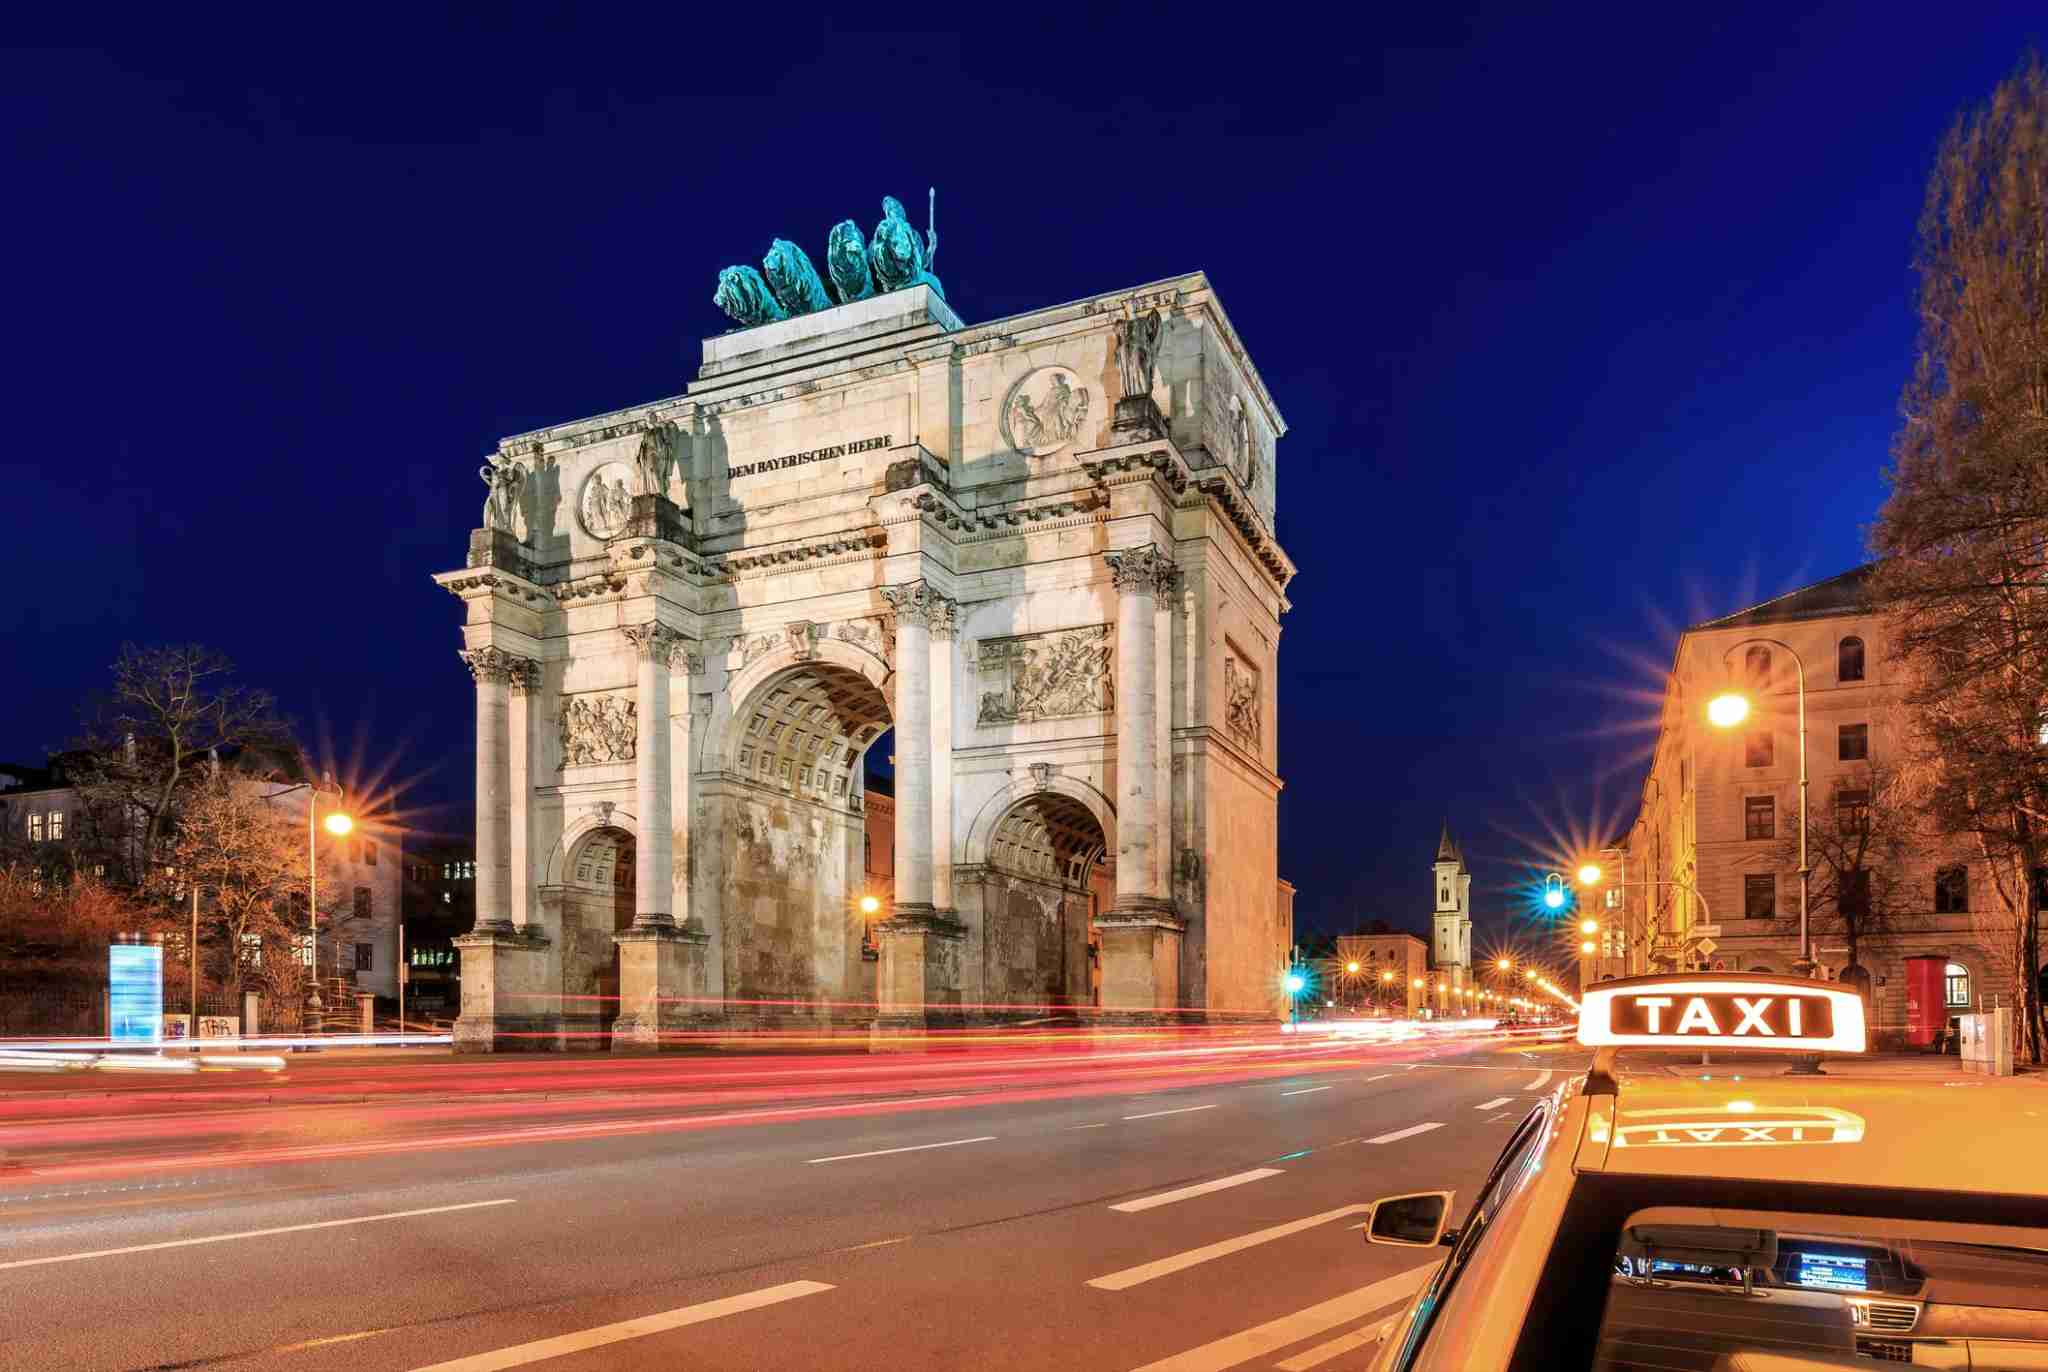 The Siegestor is a triumphal arch in Munich, Bavaria. It was built from 1844 to 1850.